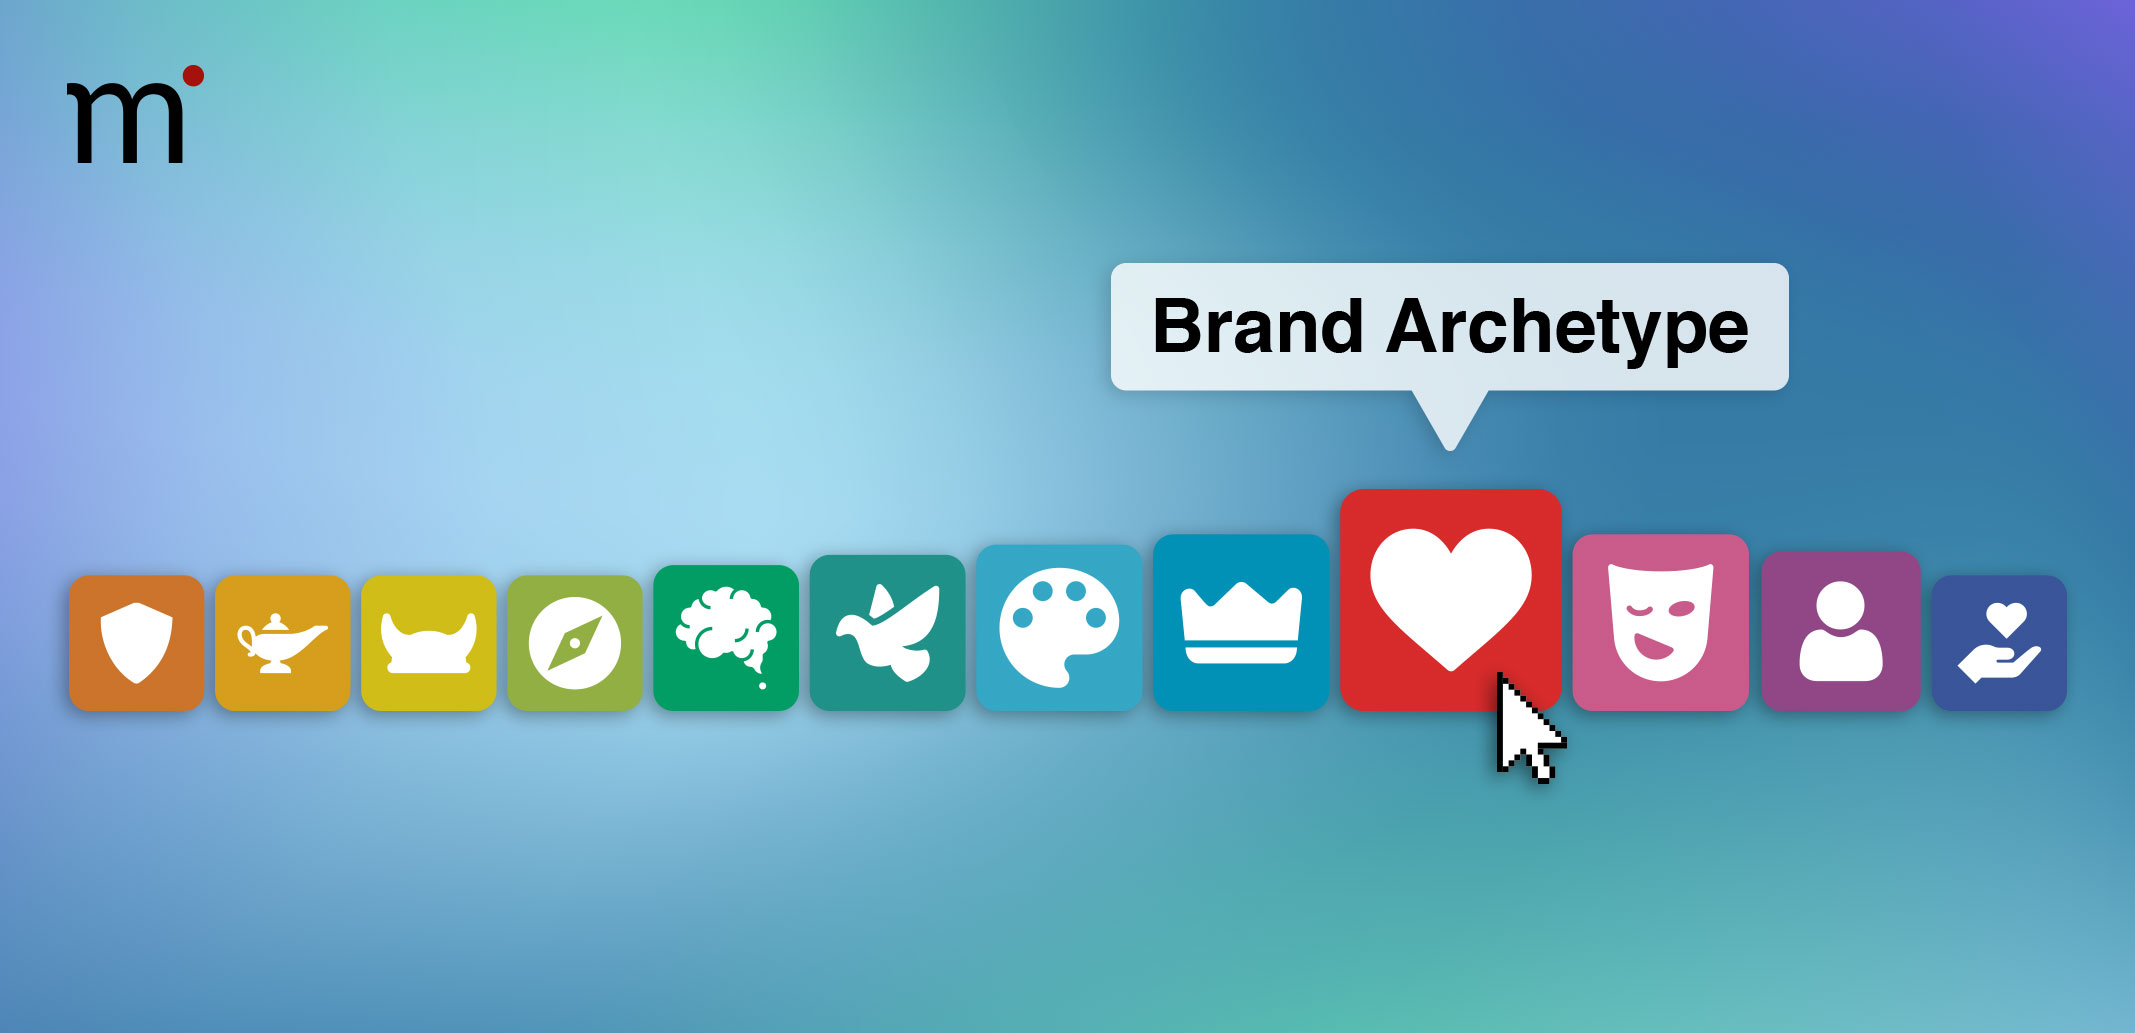 Brand Archetype for Your Brand's Characters